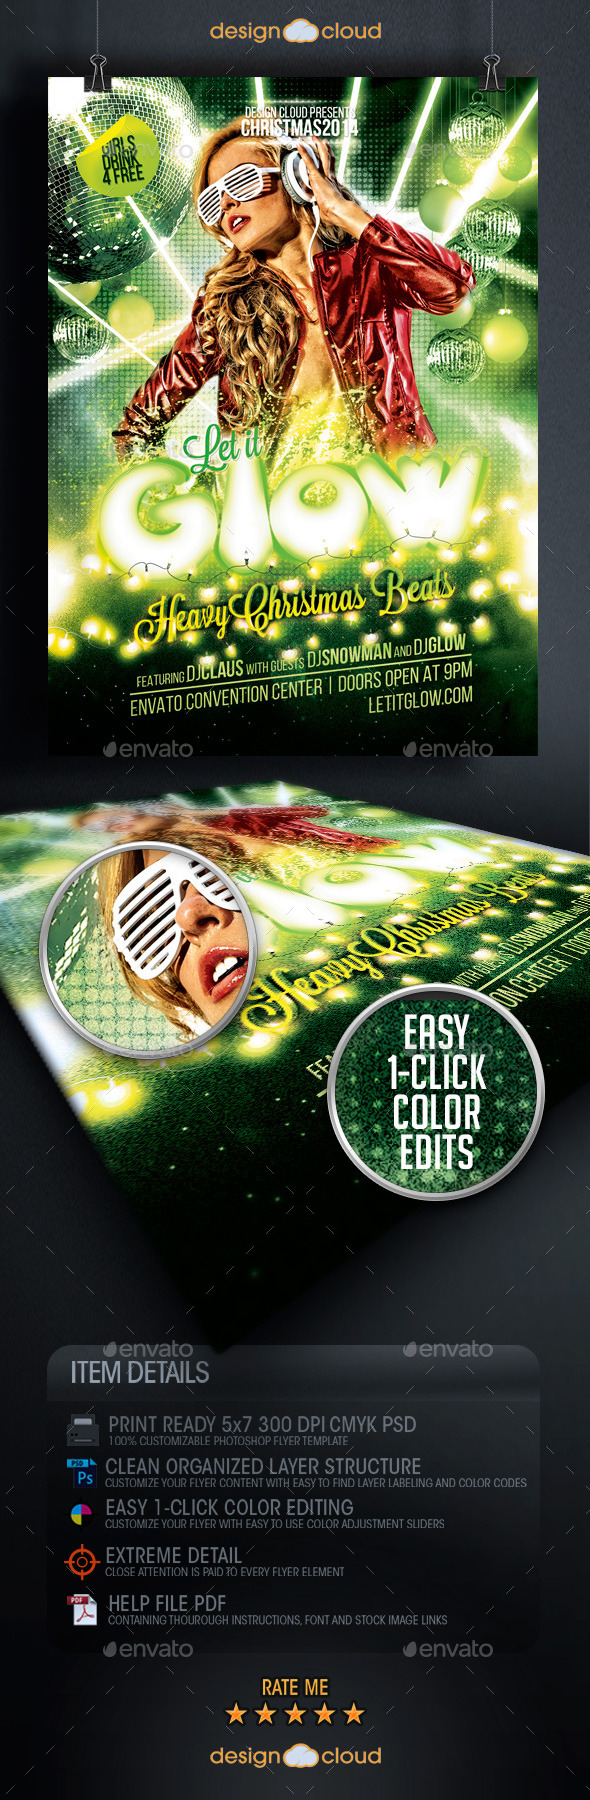 Let it Glow Christmas Event Flyer Template - Clubs & Parties Events